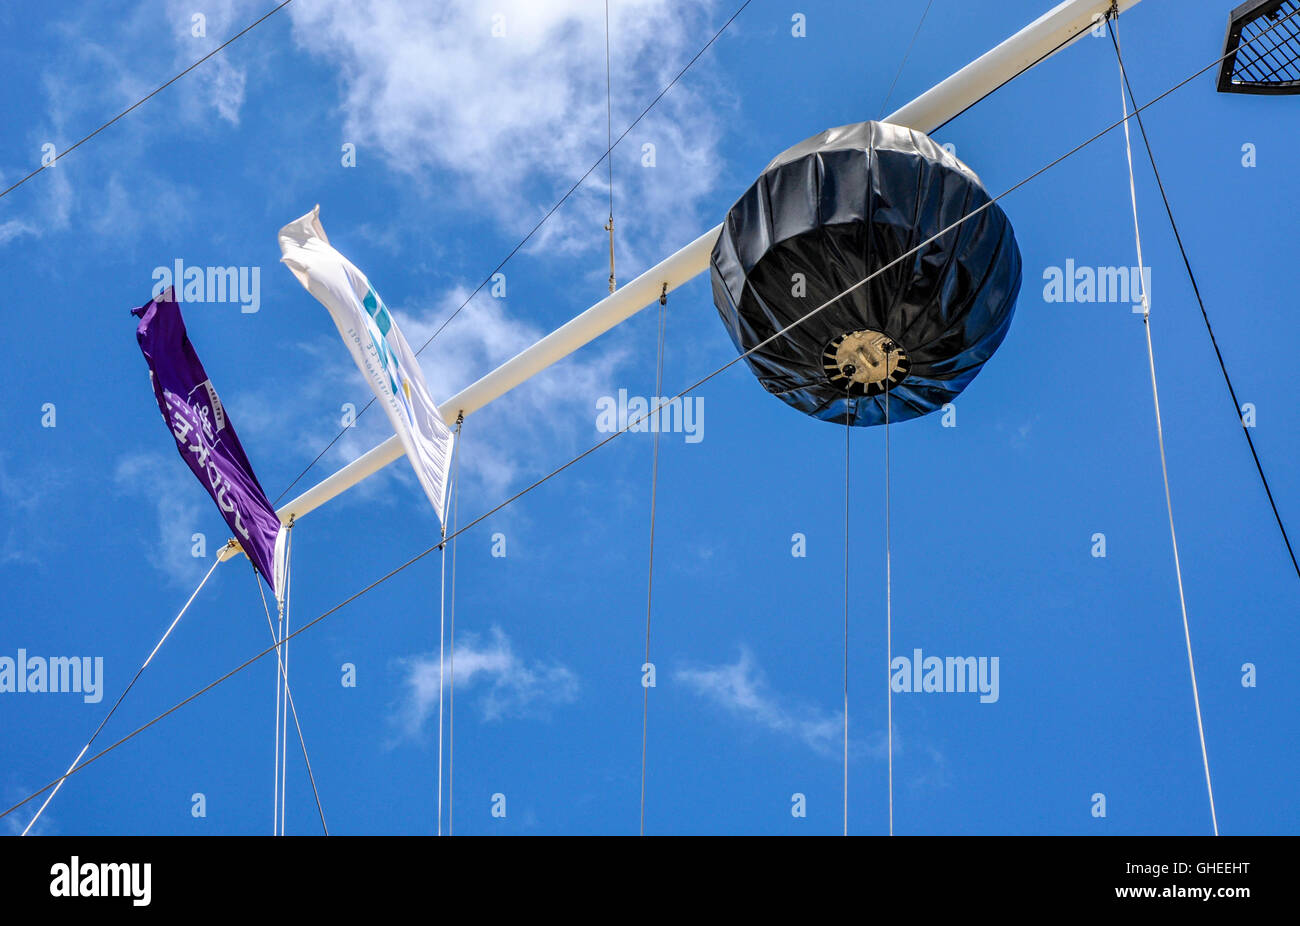 Flag array with large black time ball on flagpole on display at the Old Round House historic site in Fremantle,Western - Stock Image